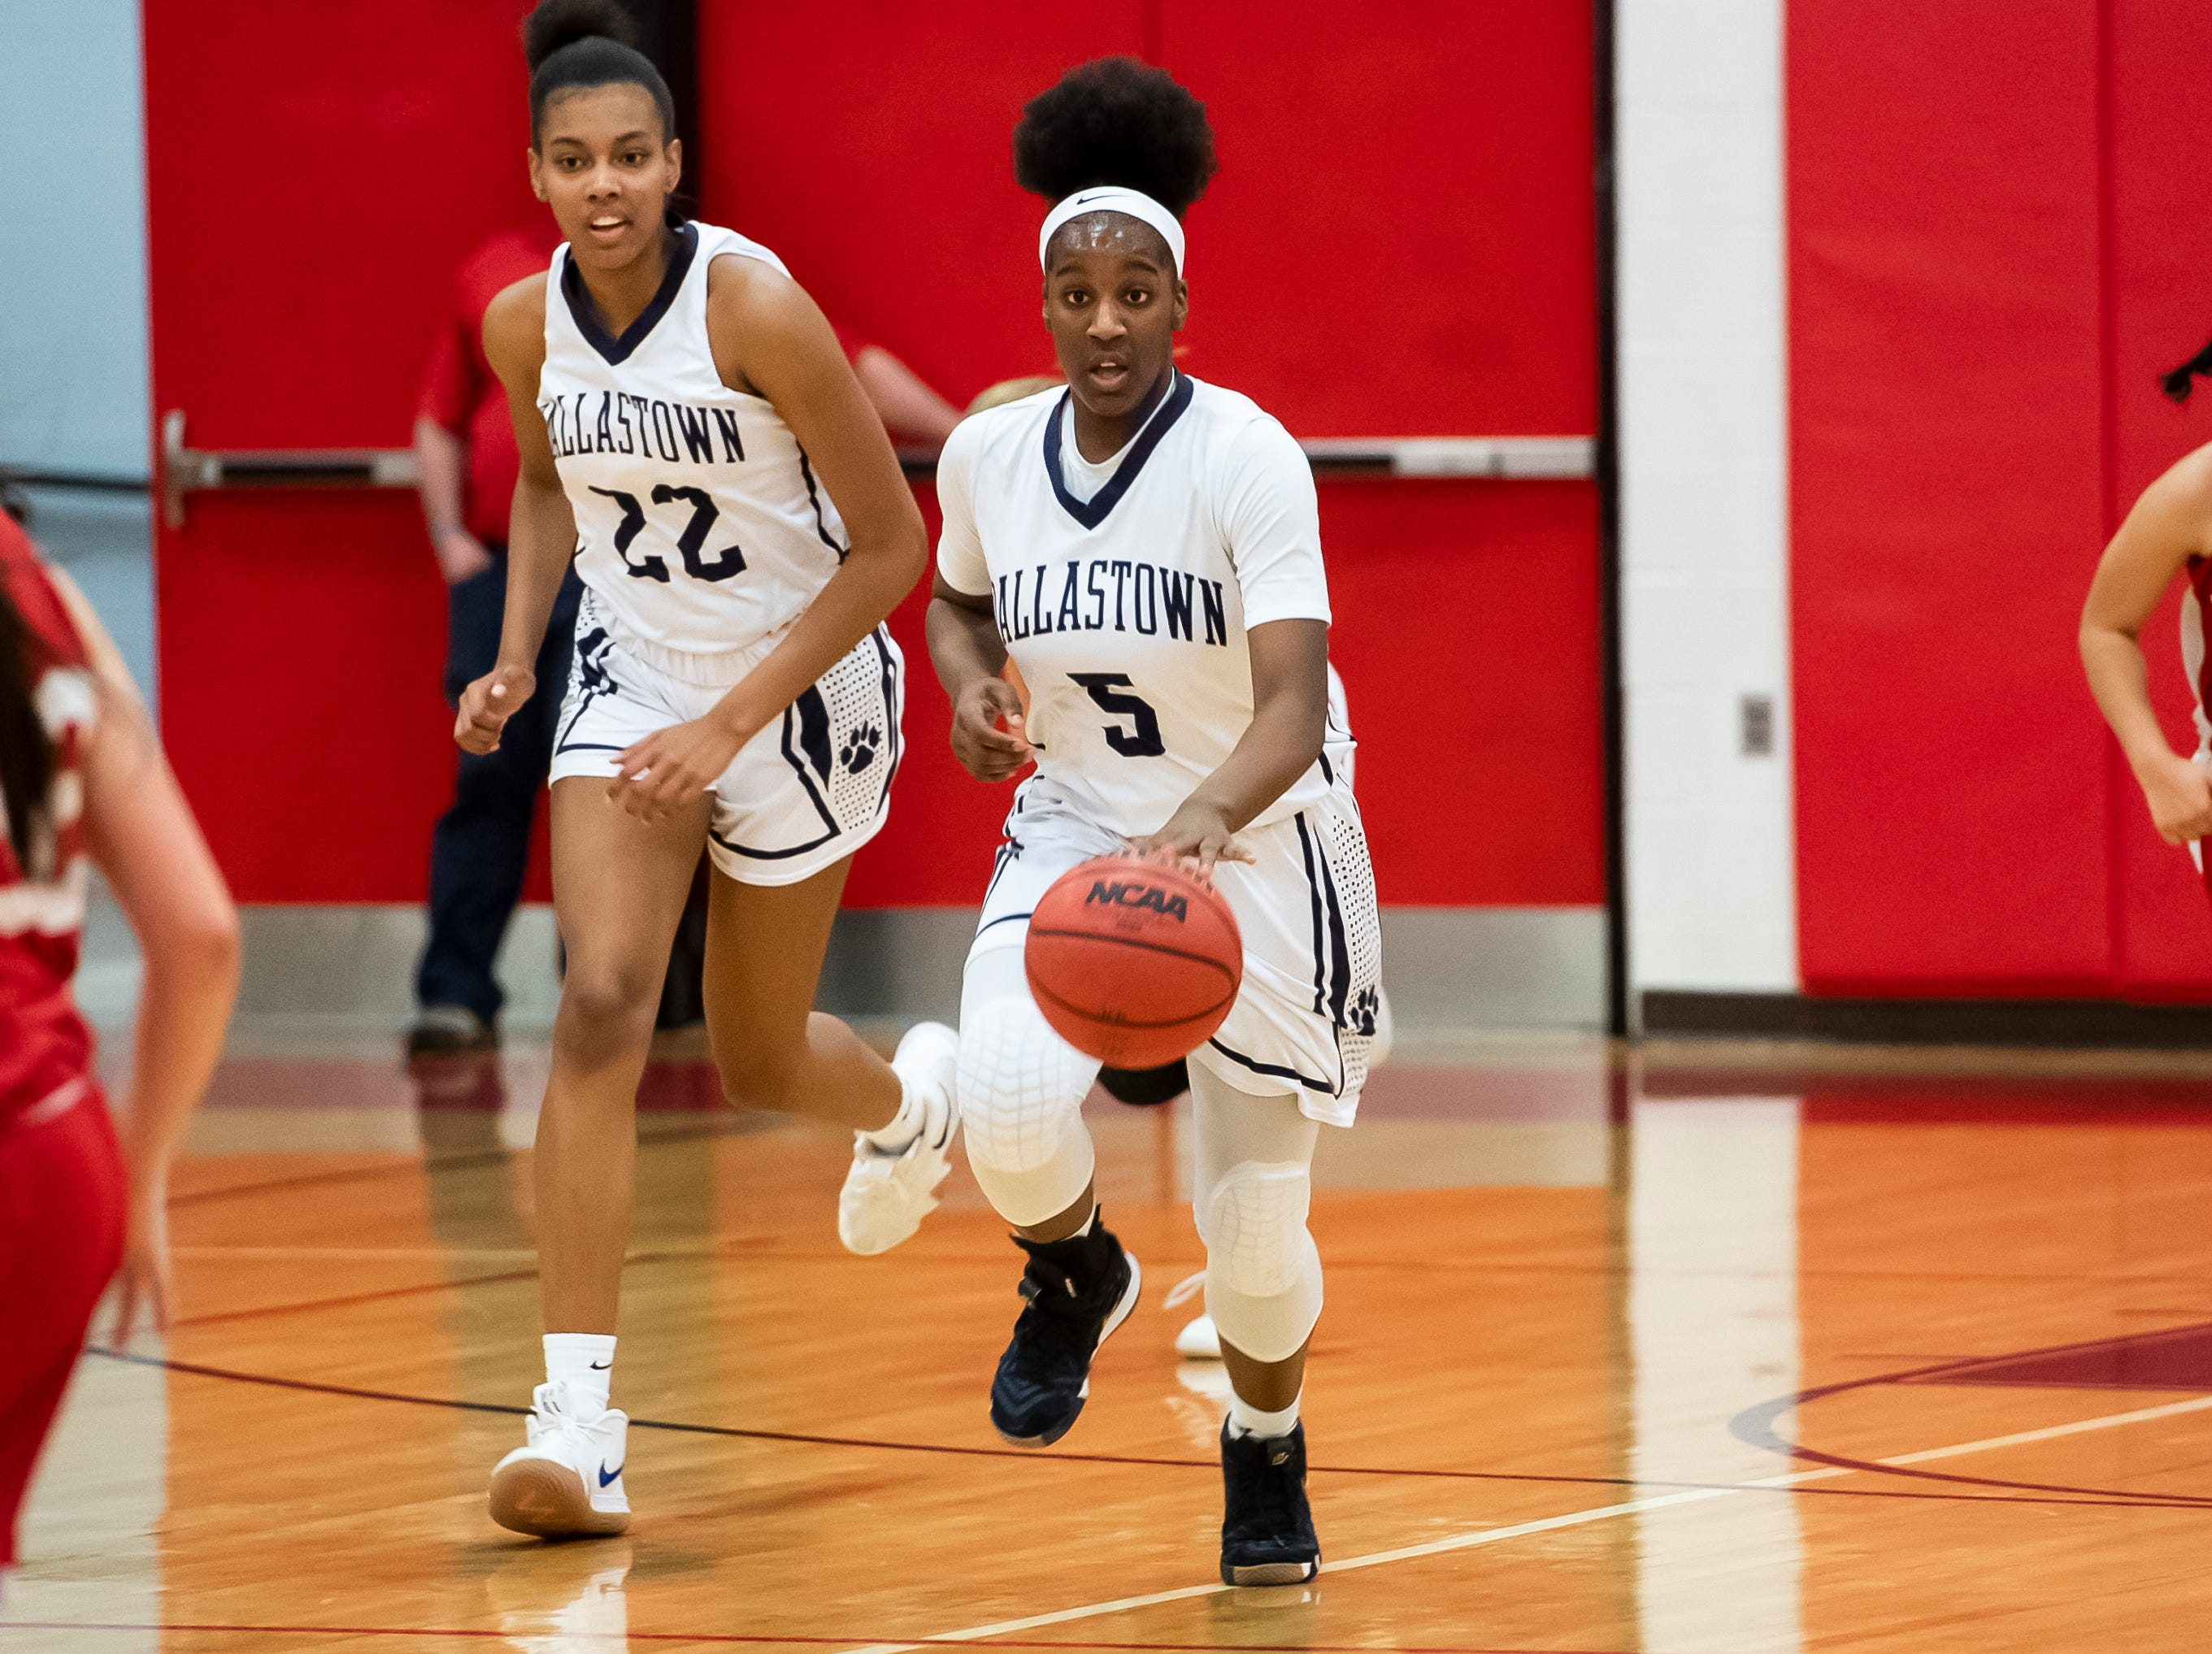 """Dallastonw's D'Shantae Edwards dribbles down the court during play against Susquehannock in a YAIAA quarterfinal game at Dover High School Friday, February 8, 2019. """"We were scrambling, and she had never played point before,"""" coach Jay Rexroth said of Edwards, a freshman, starting as the team's point guard. """"She jumped in with both feet and was willing to learn, and she has done a great job and just keeps getting better and better."""""""